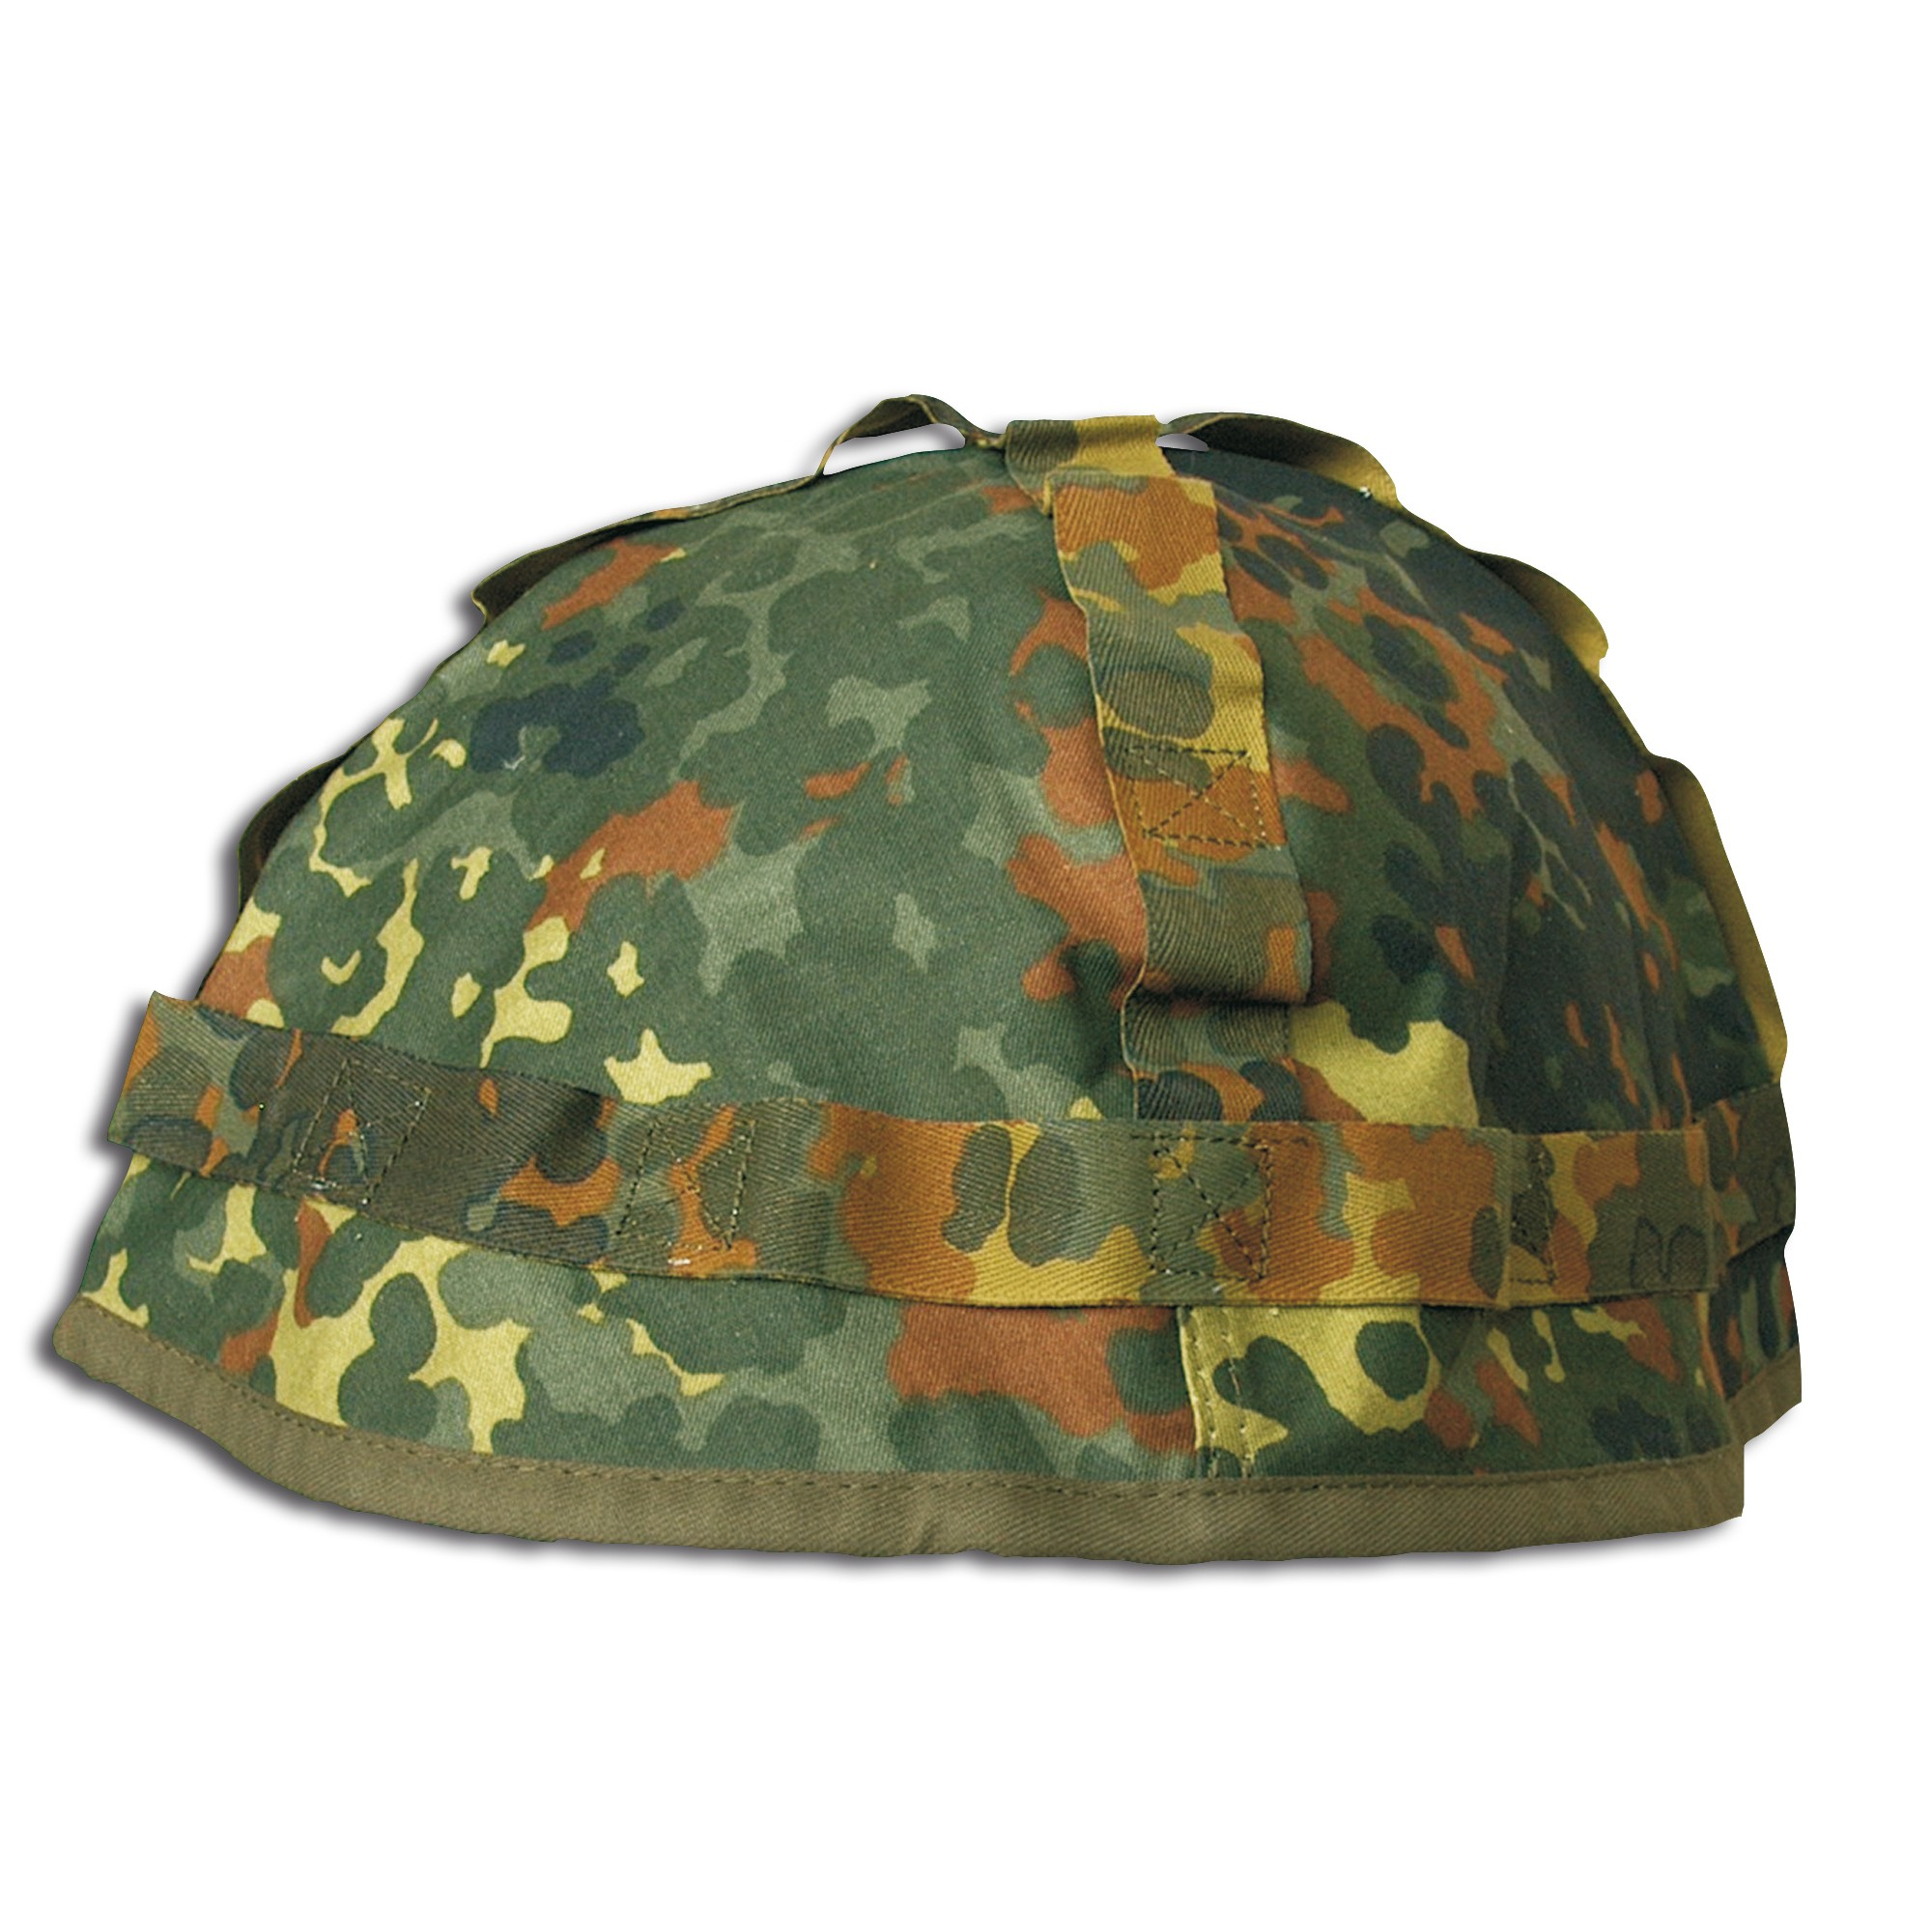 German Steel Helmet Cover Used flecktarn